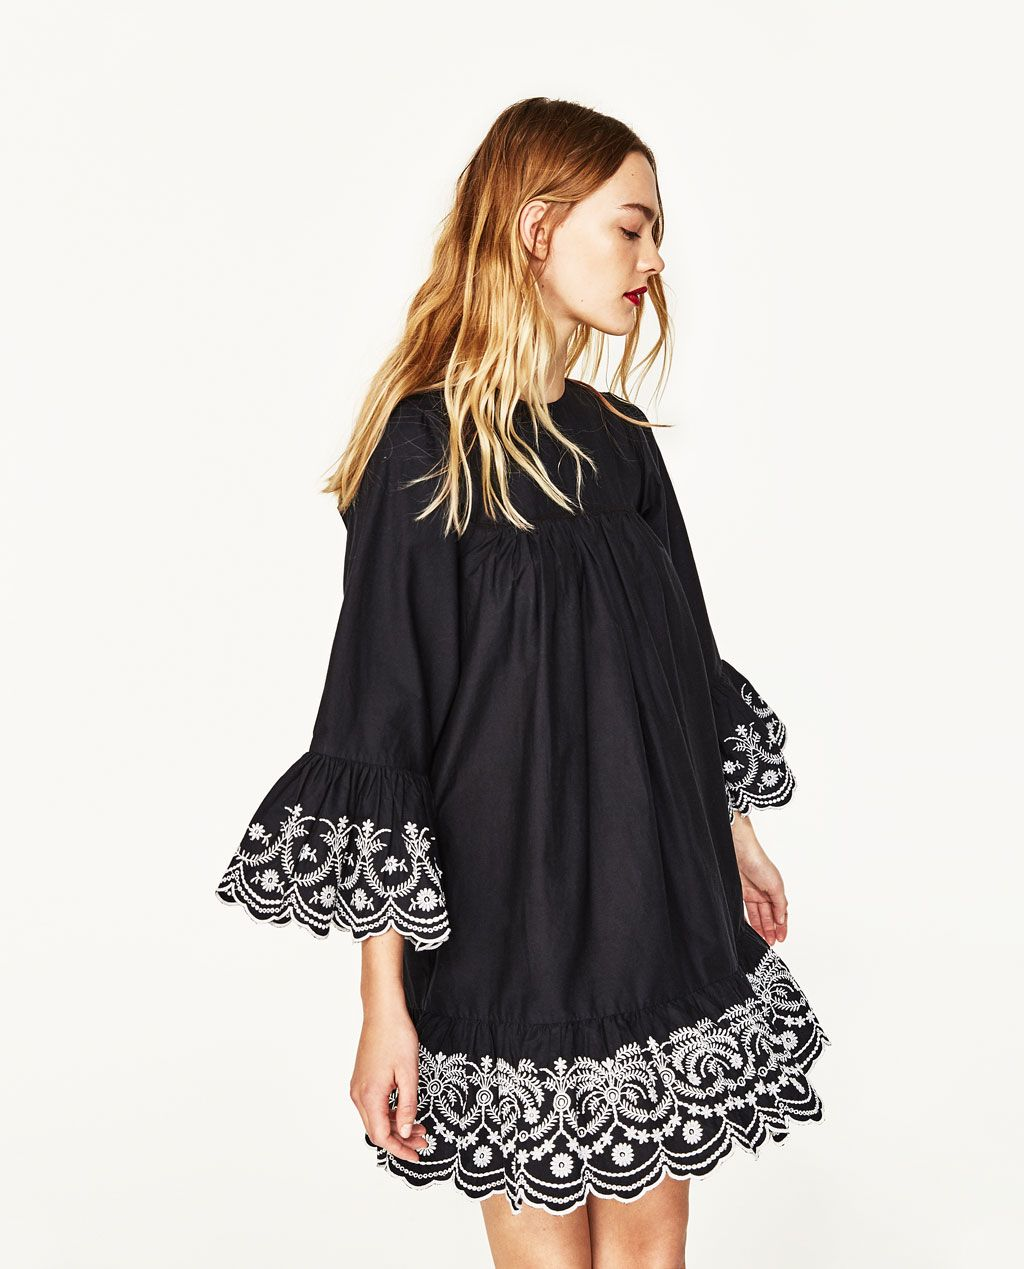 aa1c96f3cd7d LOOSE-FIT DRESS WITH CONTRASTING EMBROIDERY-DRESSES-WOMAN